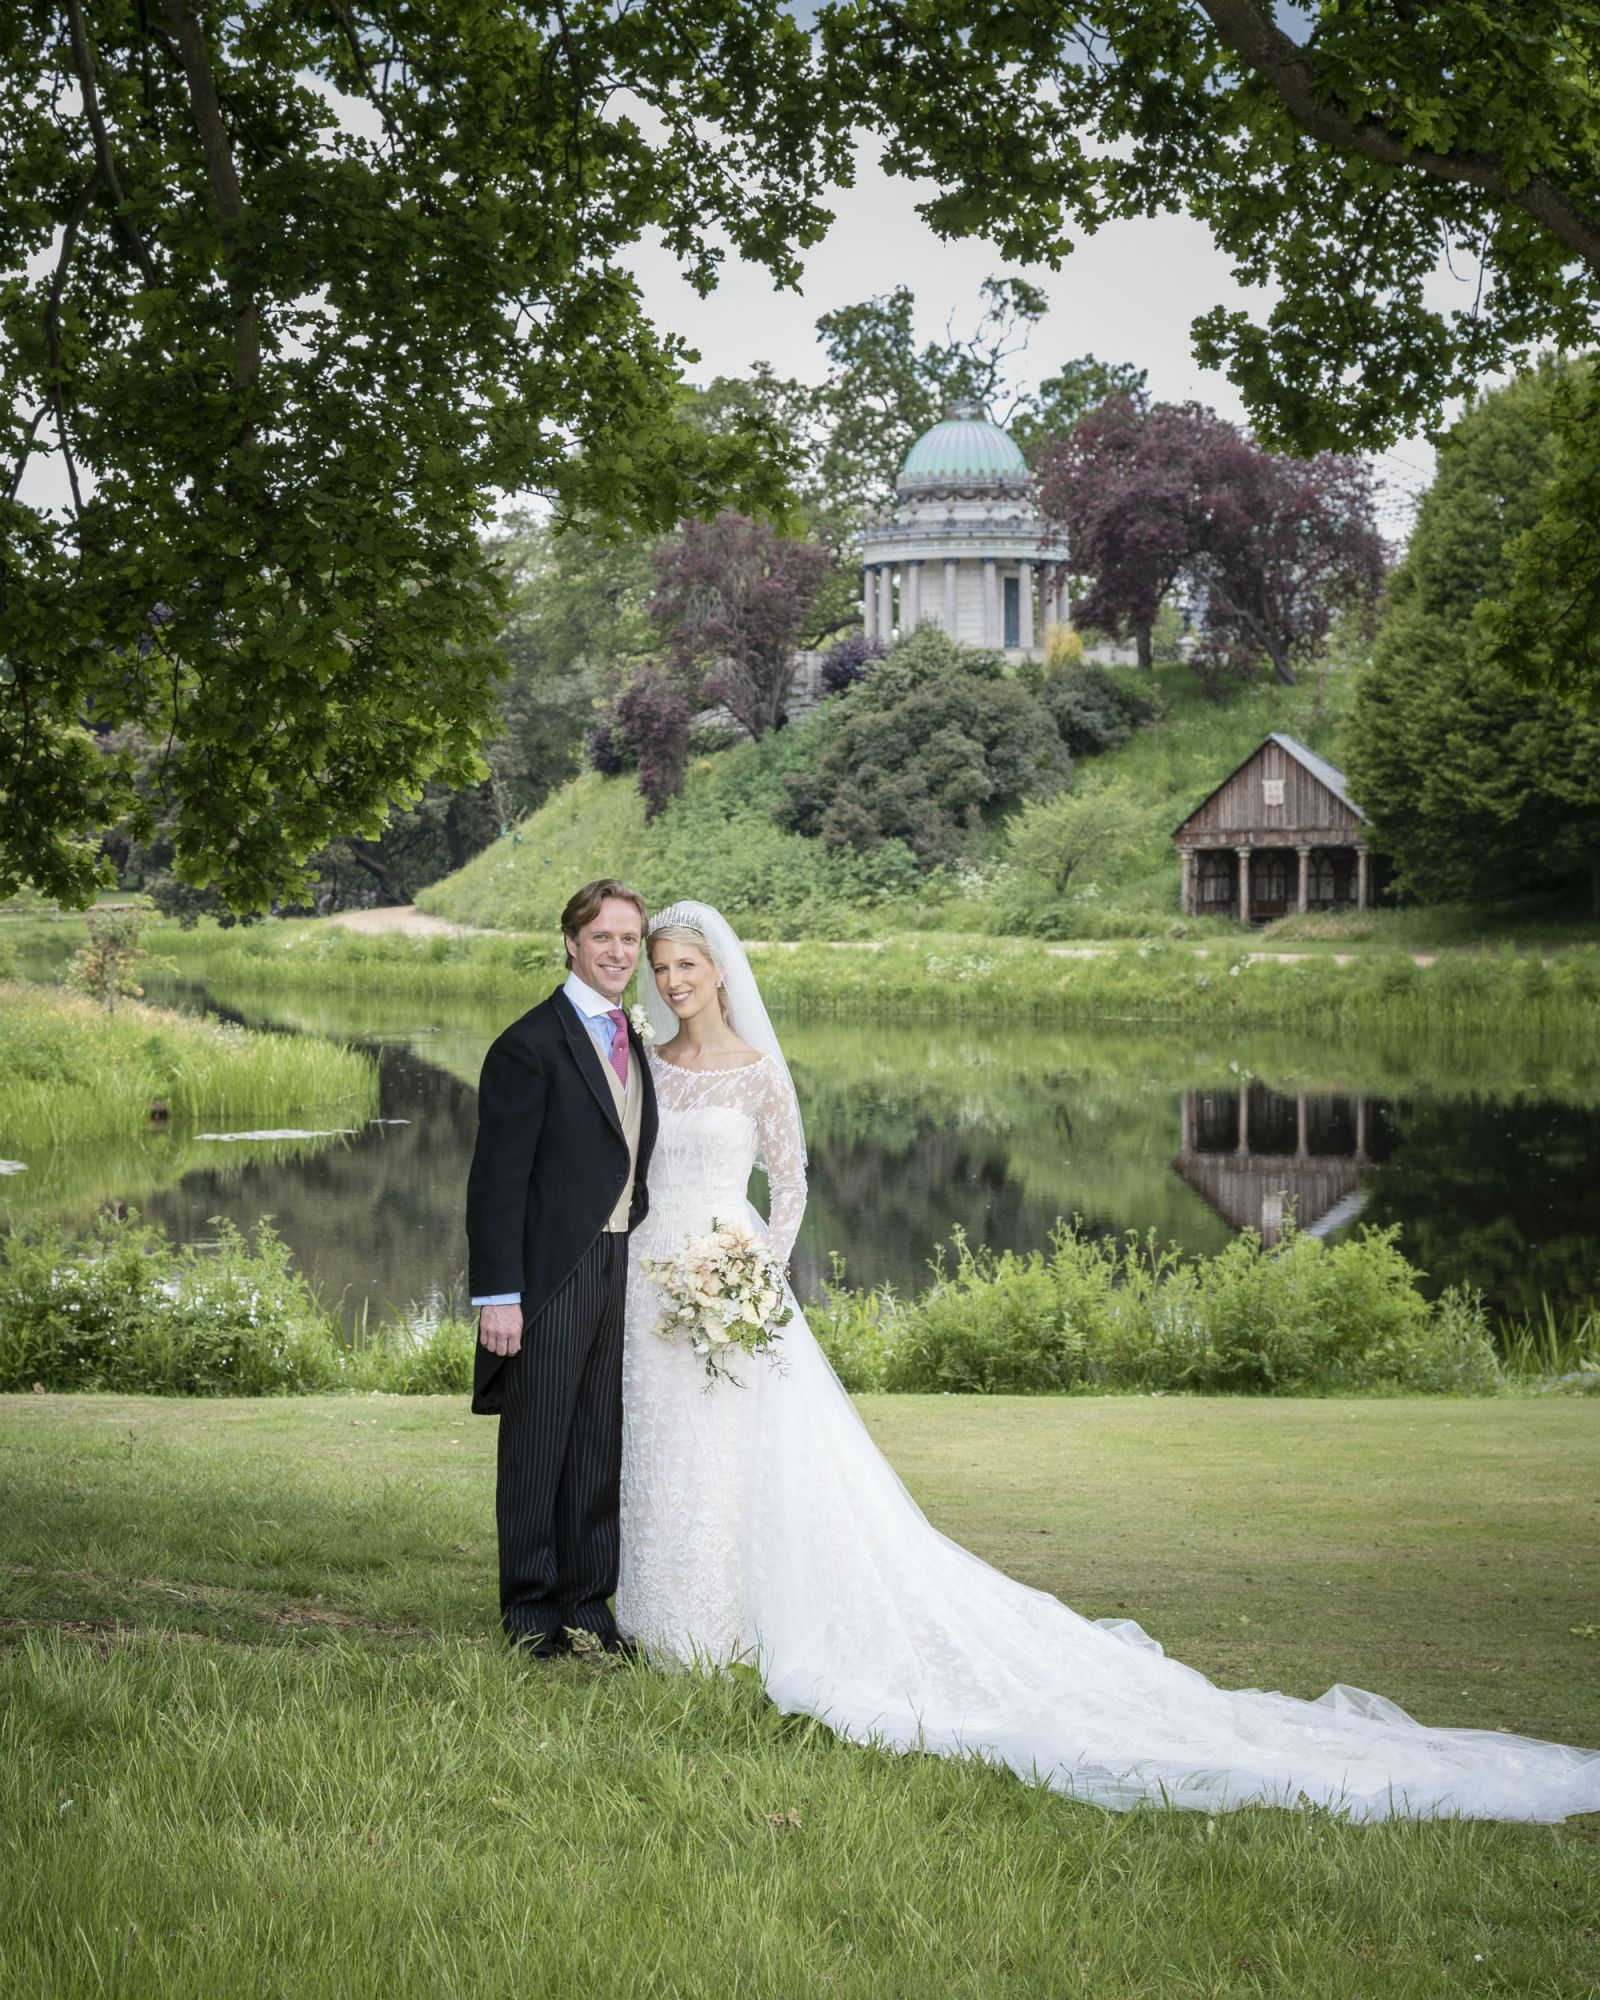 Who Is Lady Gabriella Windsor And When Is The Next Royal Wedding?